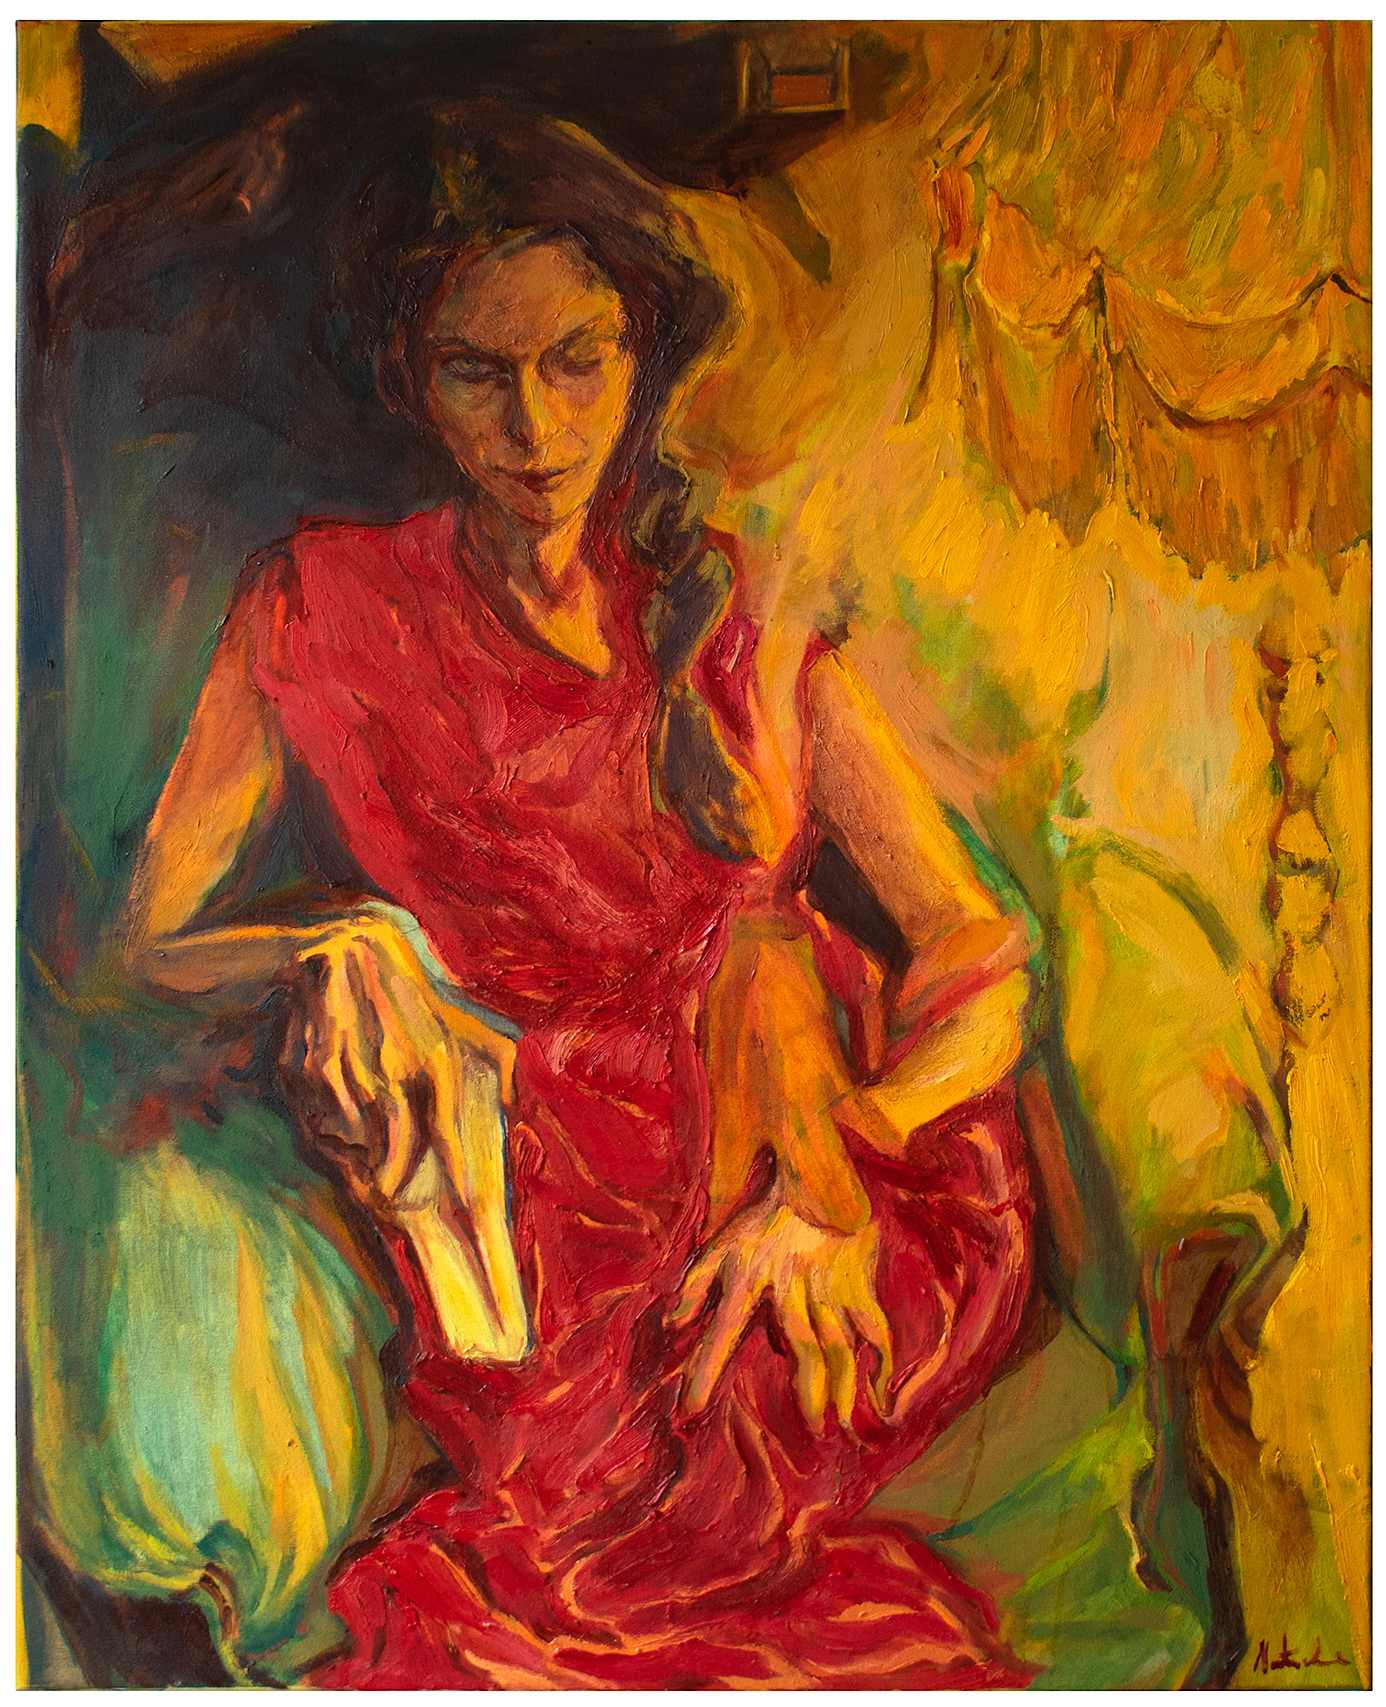 Natacha Martins, Portrait of A Woman, 2021, Oil on canvas, 100 x 80 cm, 39.3 x 31.5 in, © The Artist